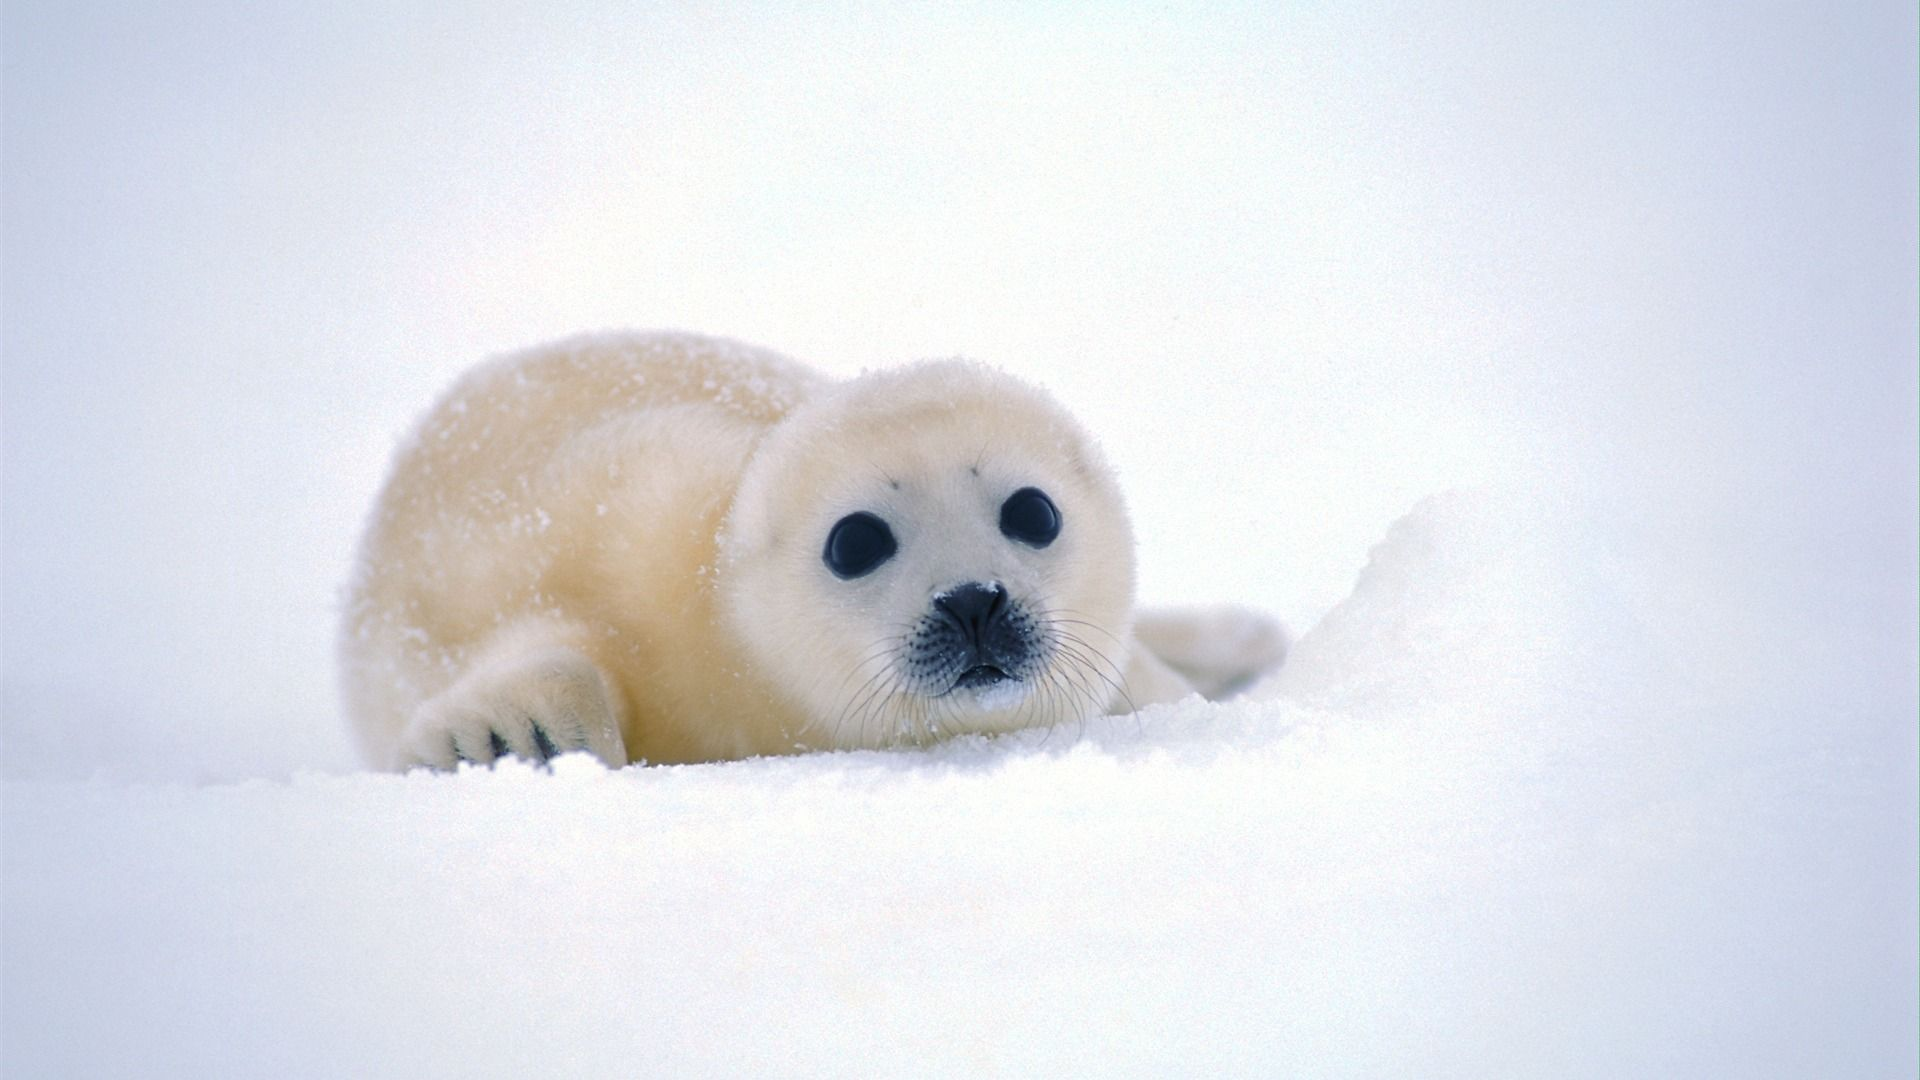 ccfaafbdedced-baby-seal-seals-wallpaper-wp3603791